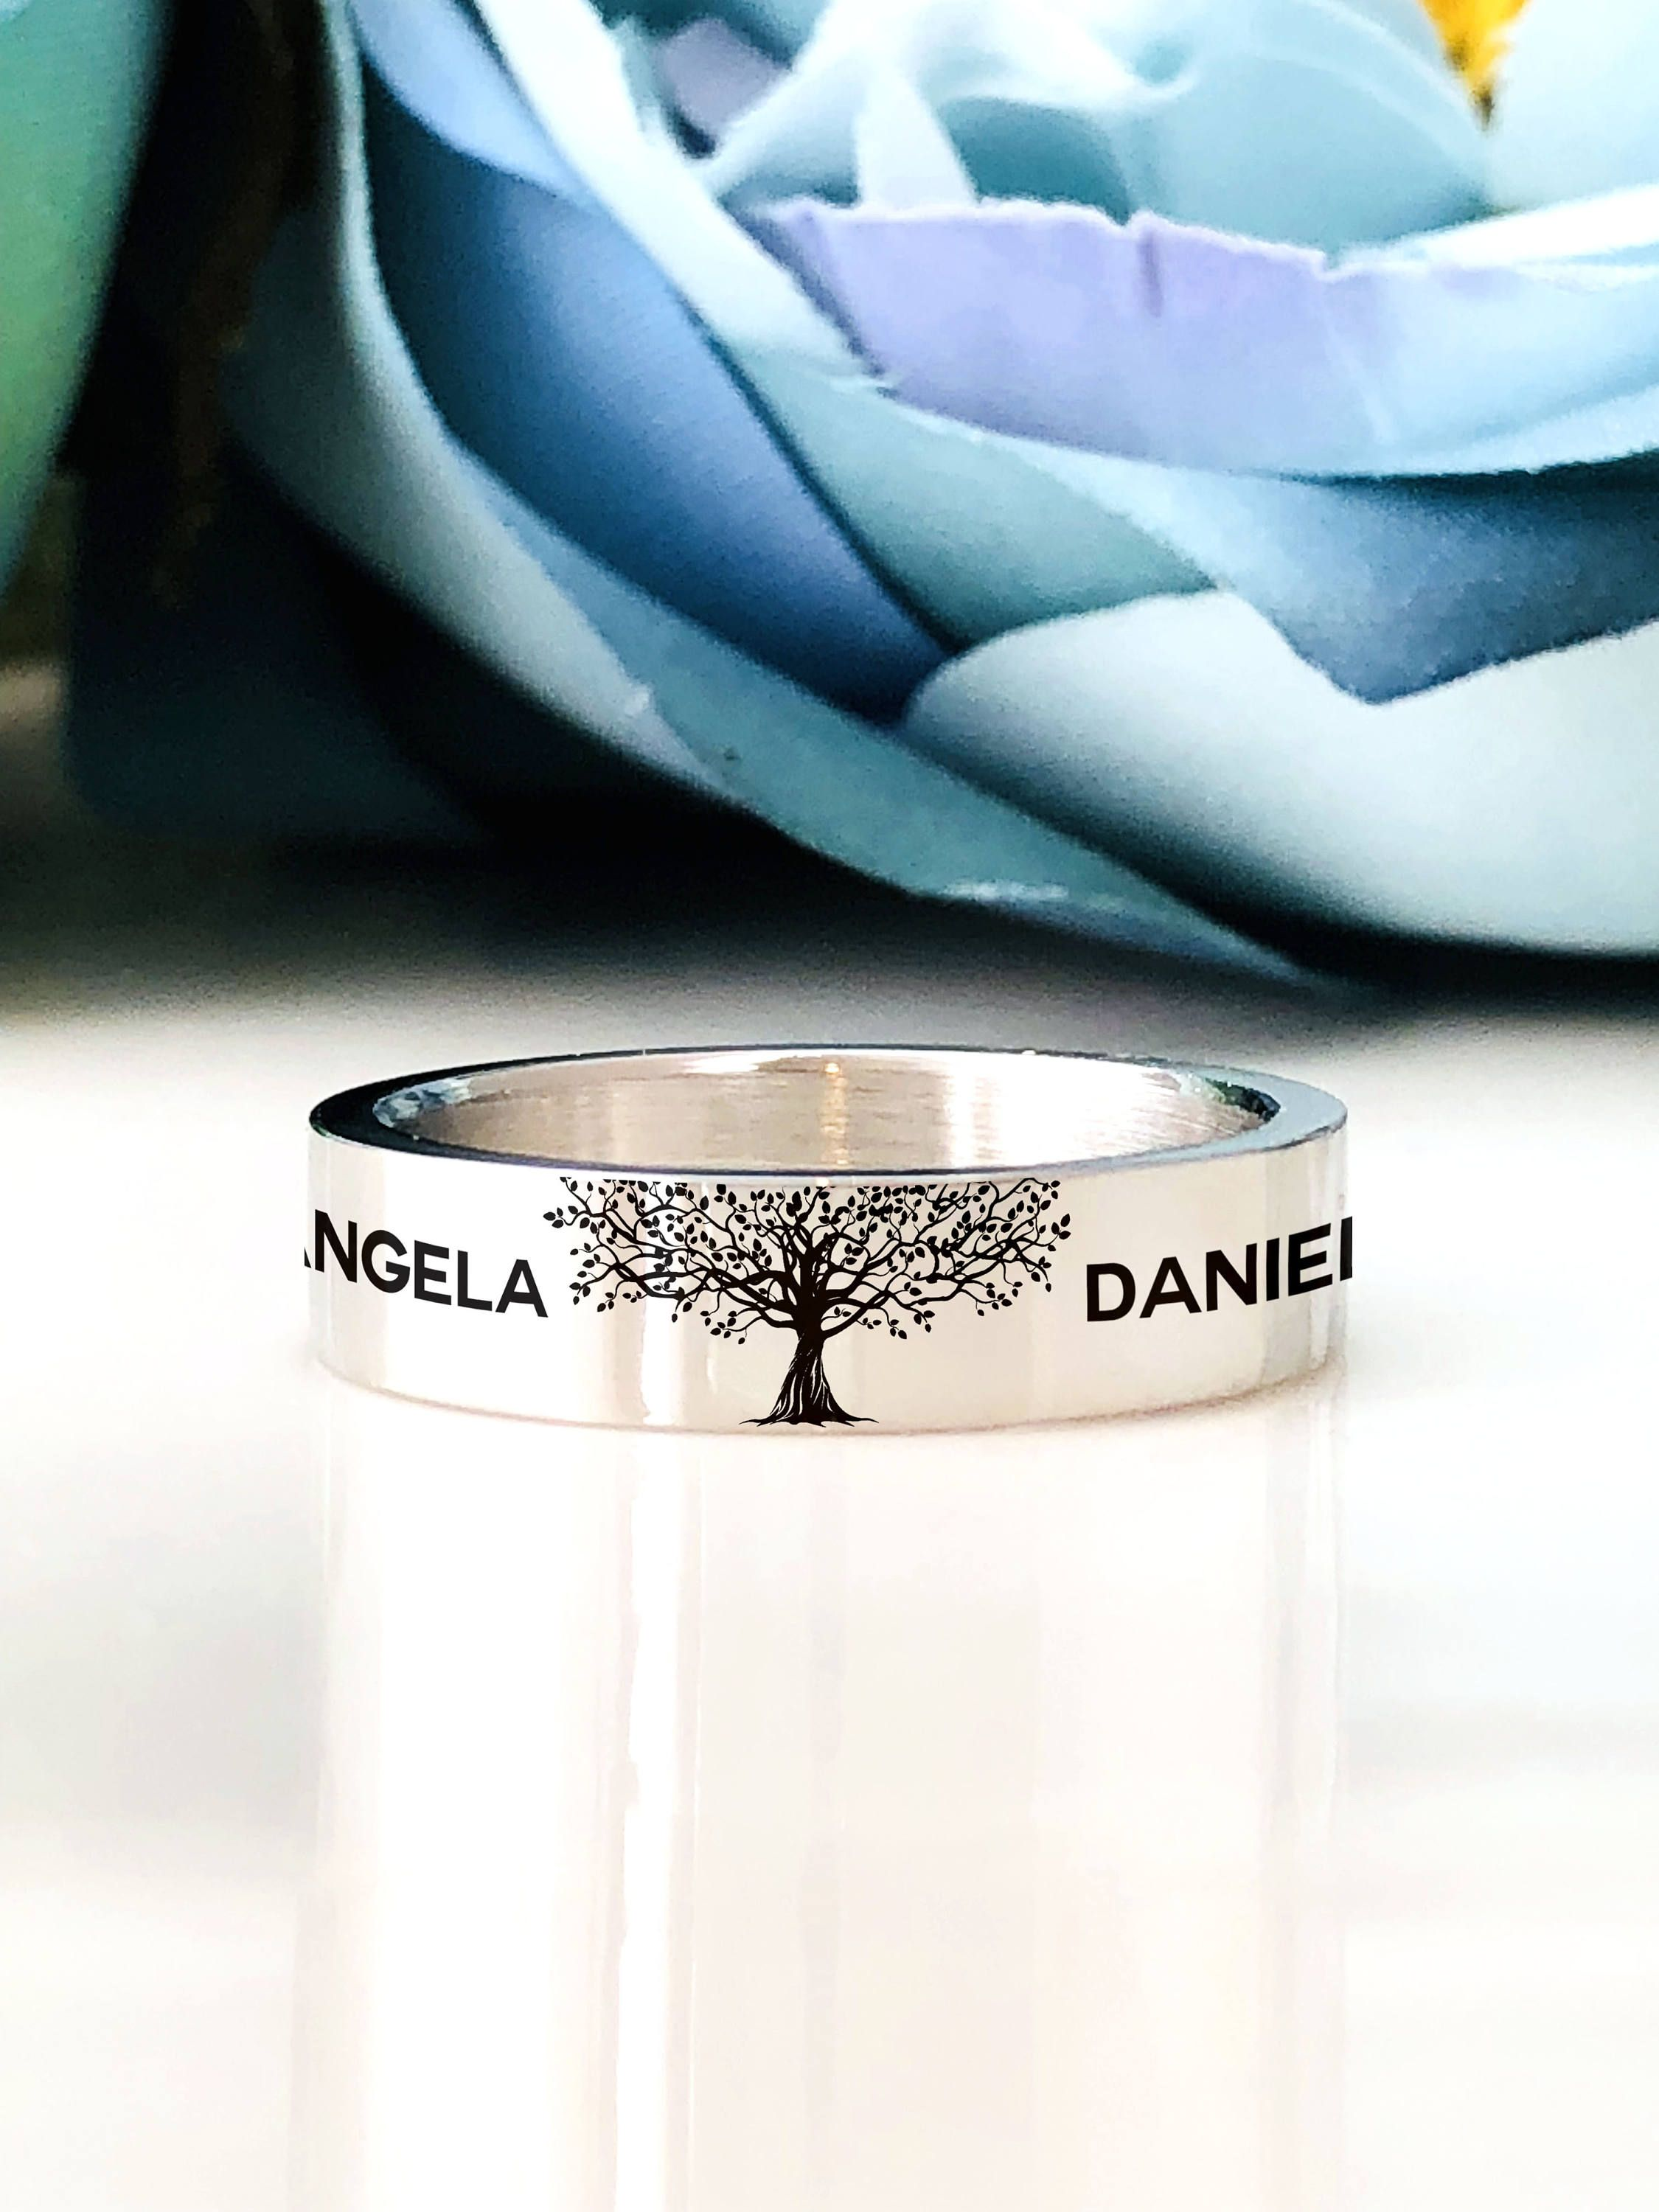 Stainless Steel 5mm Band Ring Family Tree Ring Custom Personalized Engraved Ring Engraving Inside Sold Separately Cute Anniversary Gifts Engraved Rings Anniversary Gifts For Husband